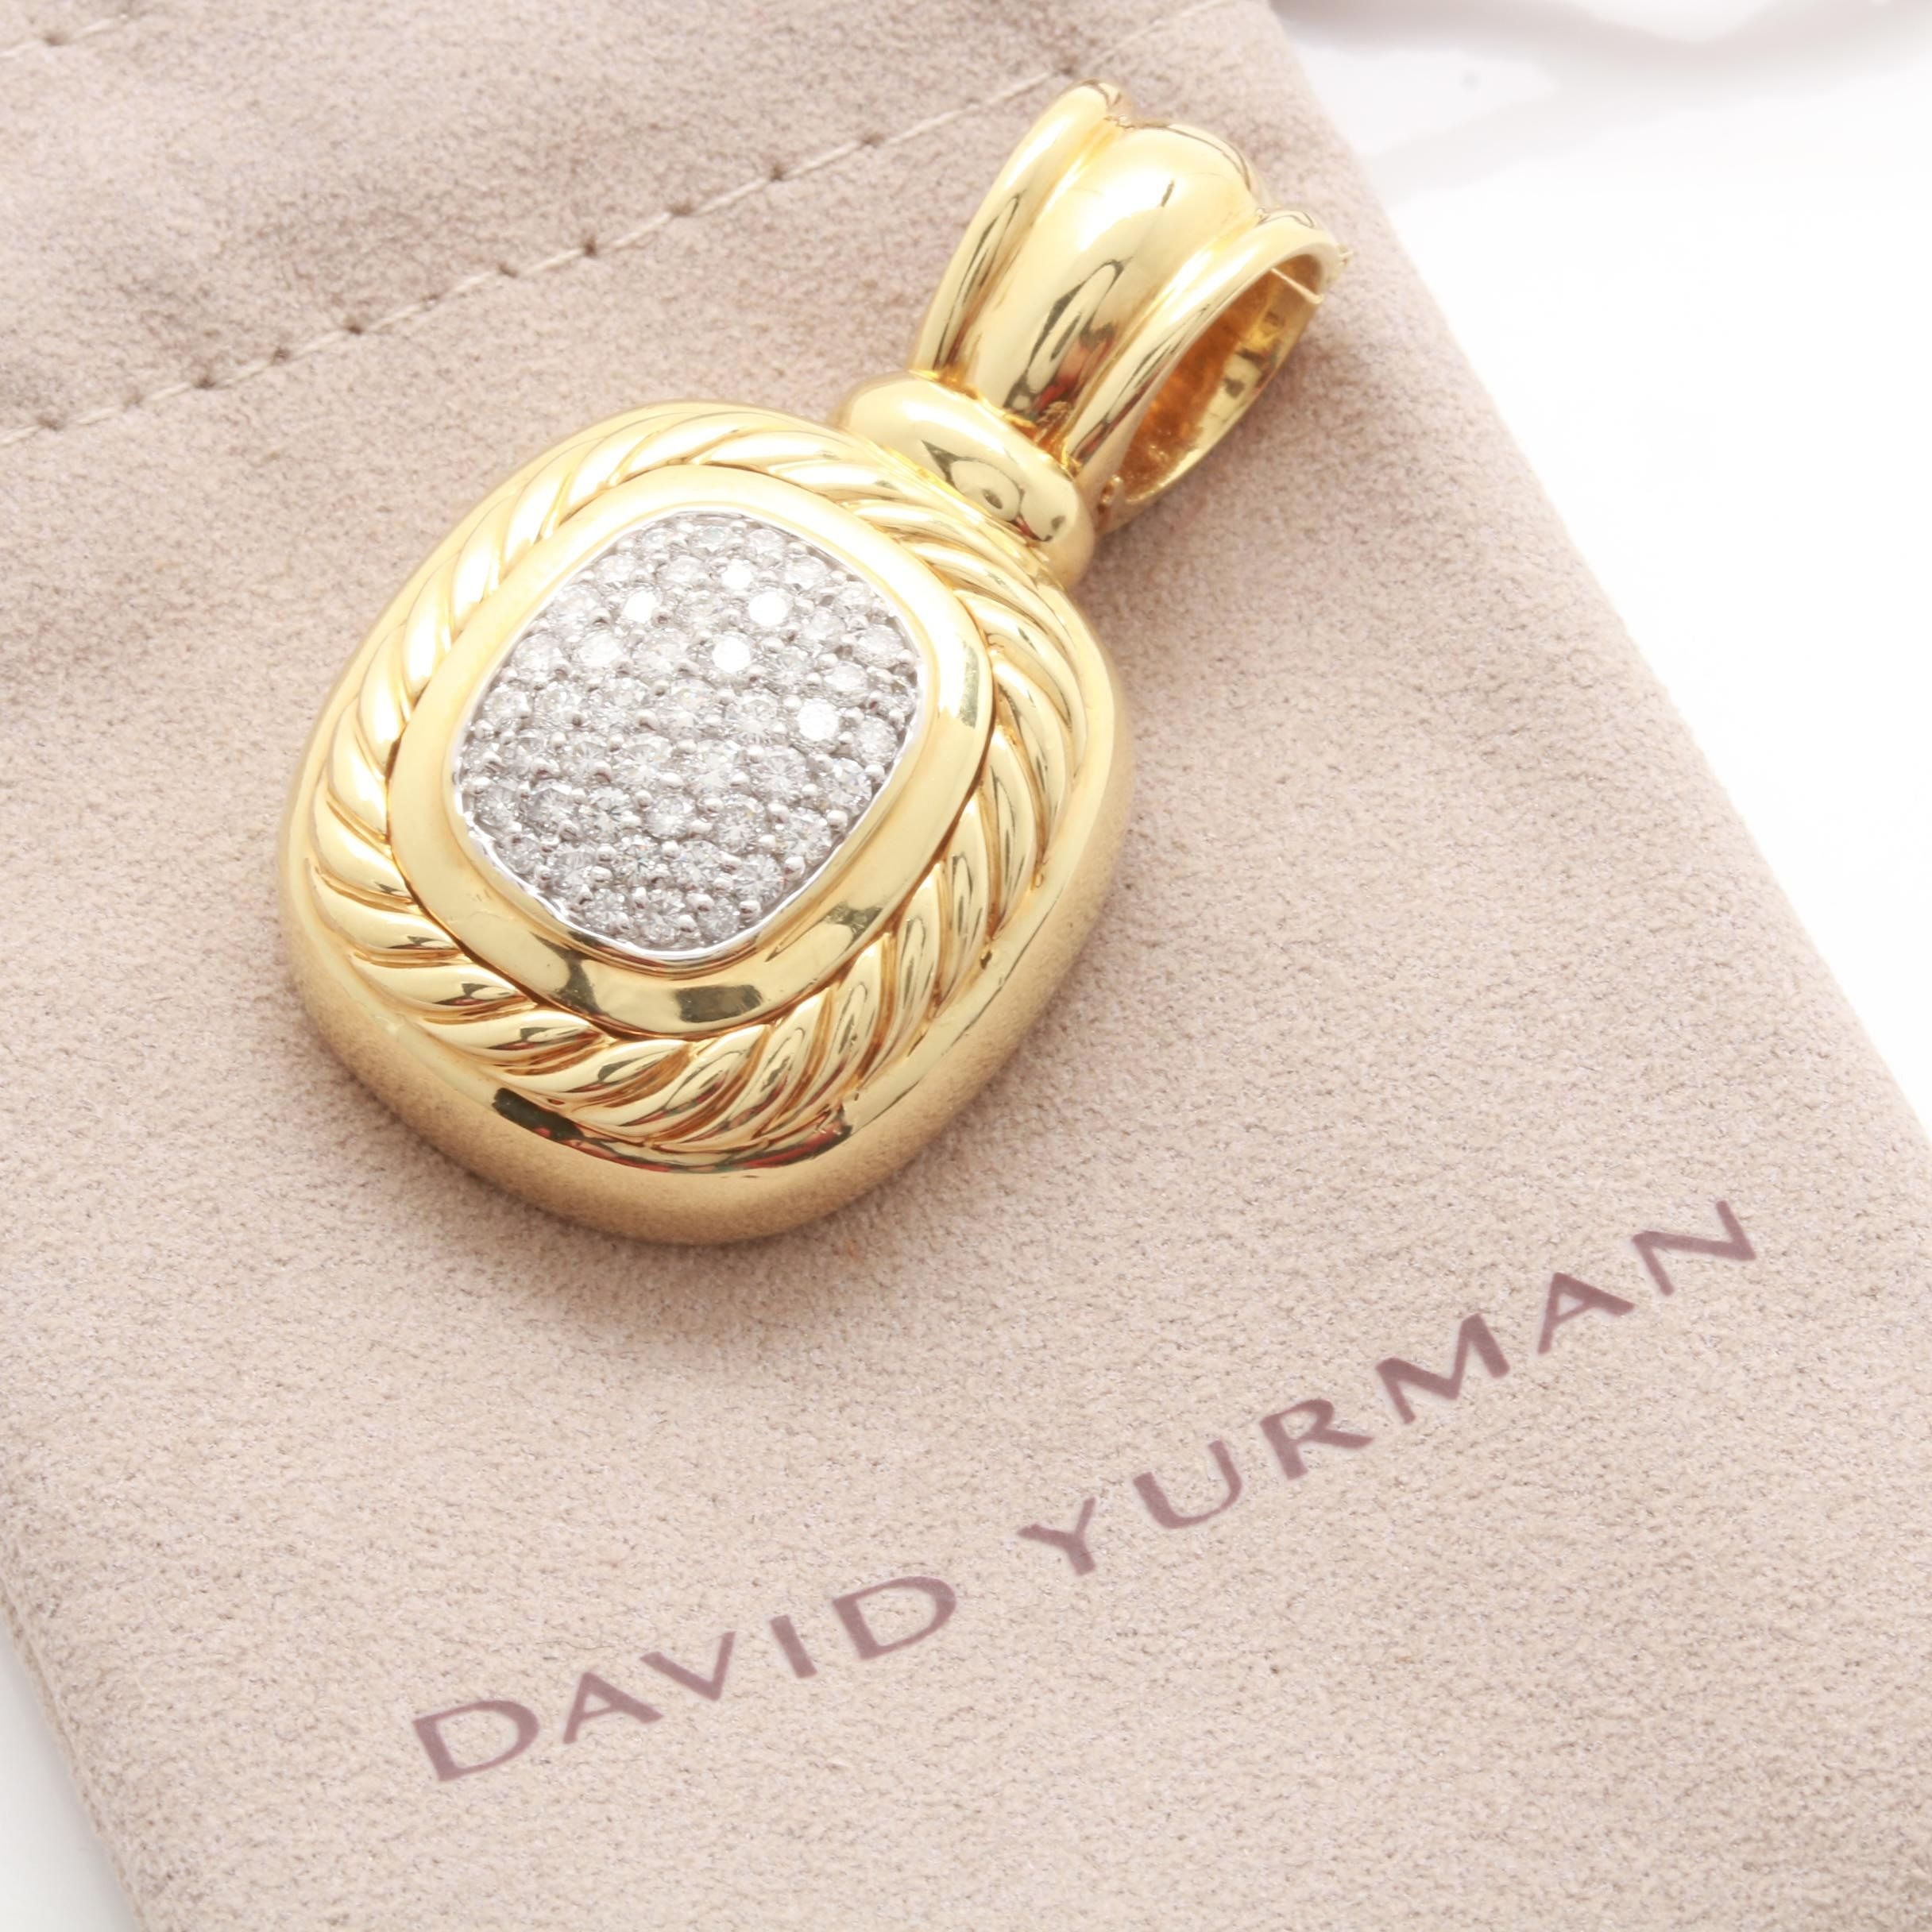 David Yurman 18K Yellow Gold 0.90 CTW Diamond Pendant